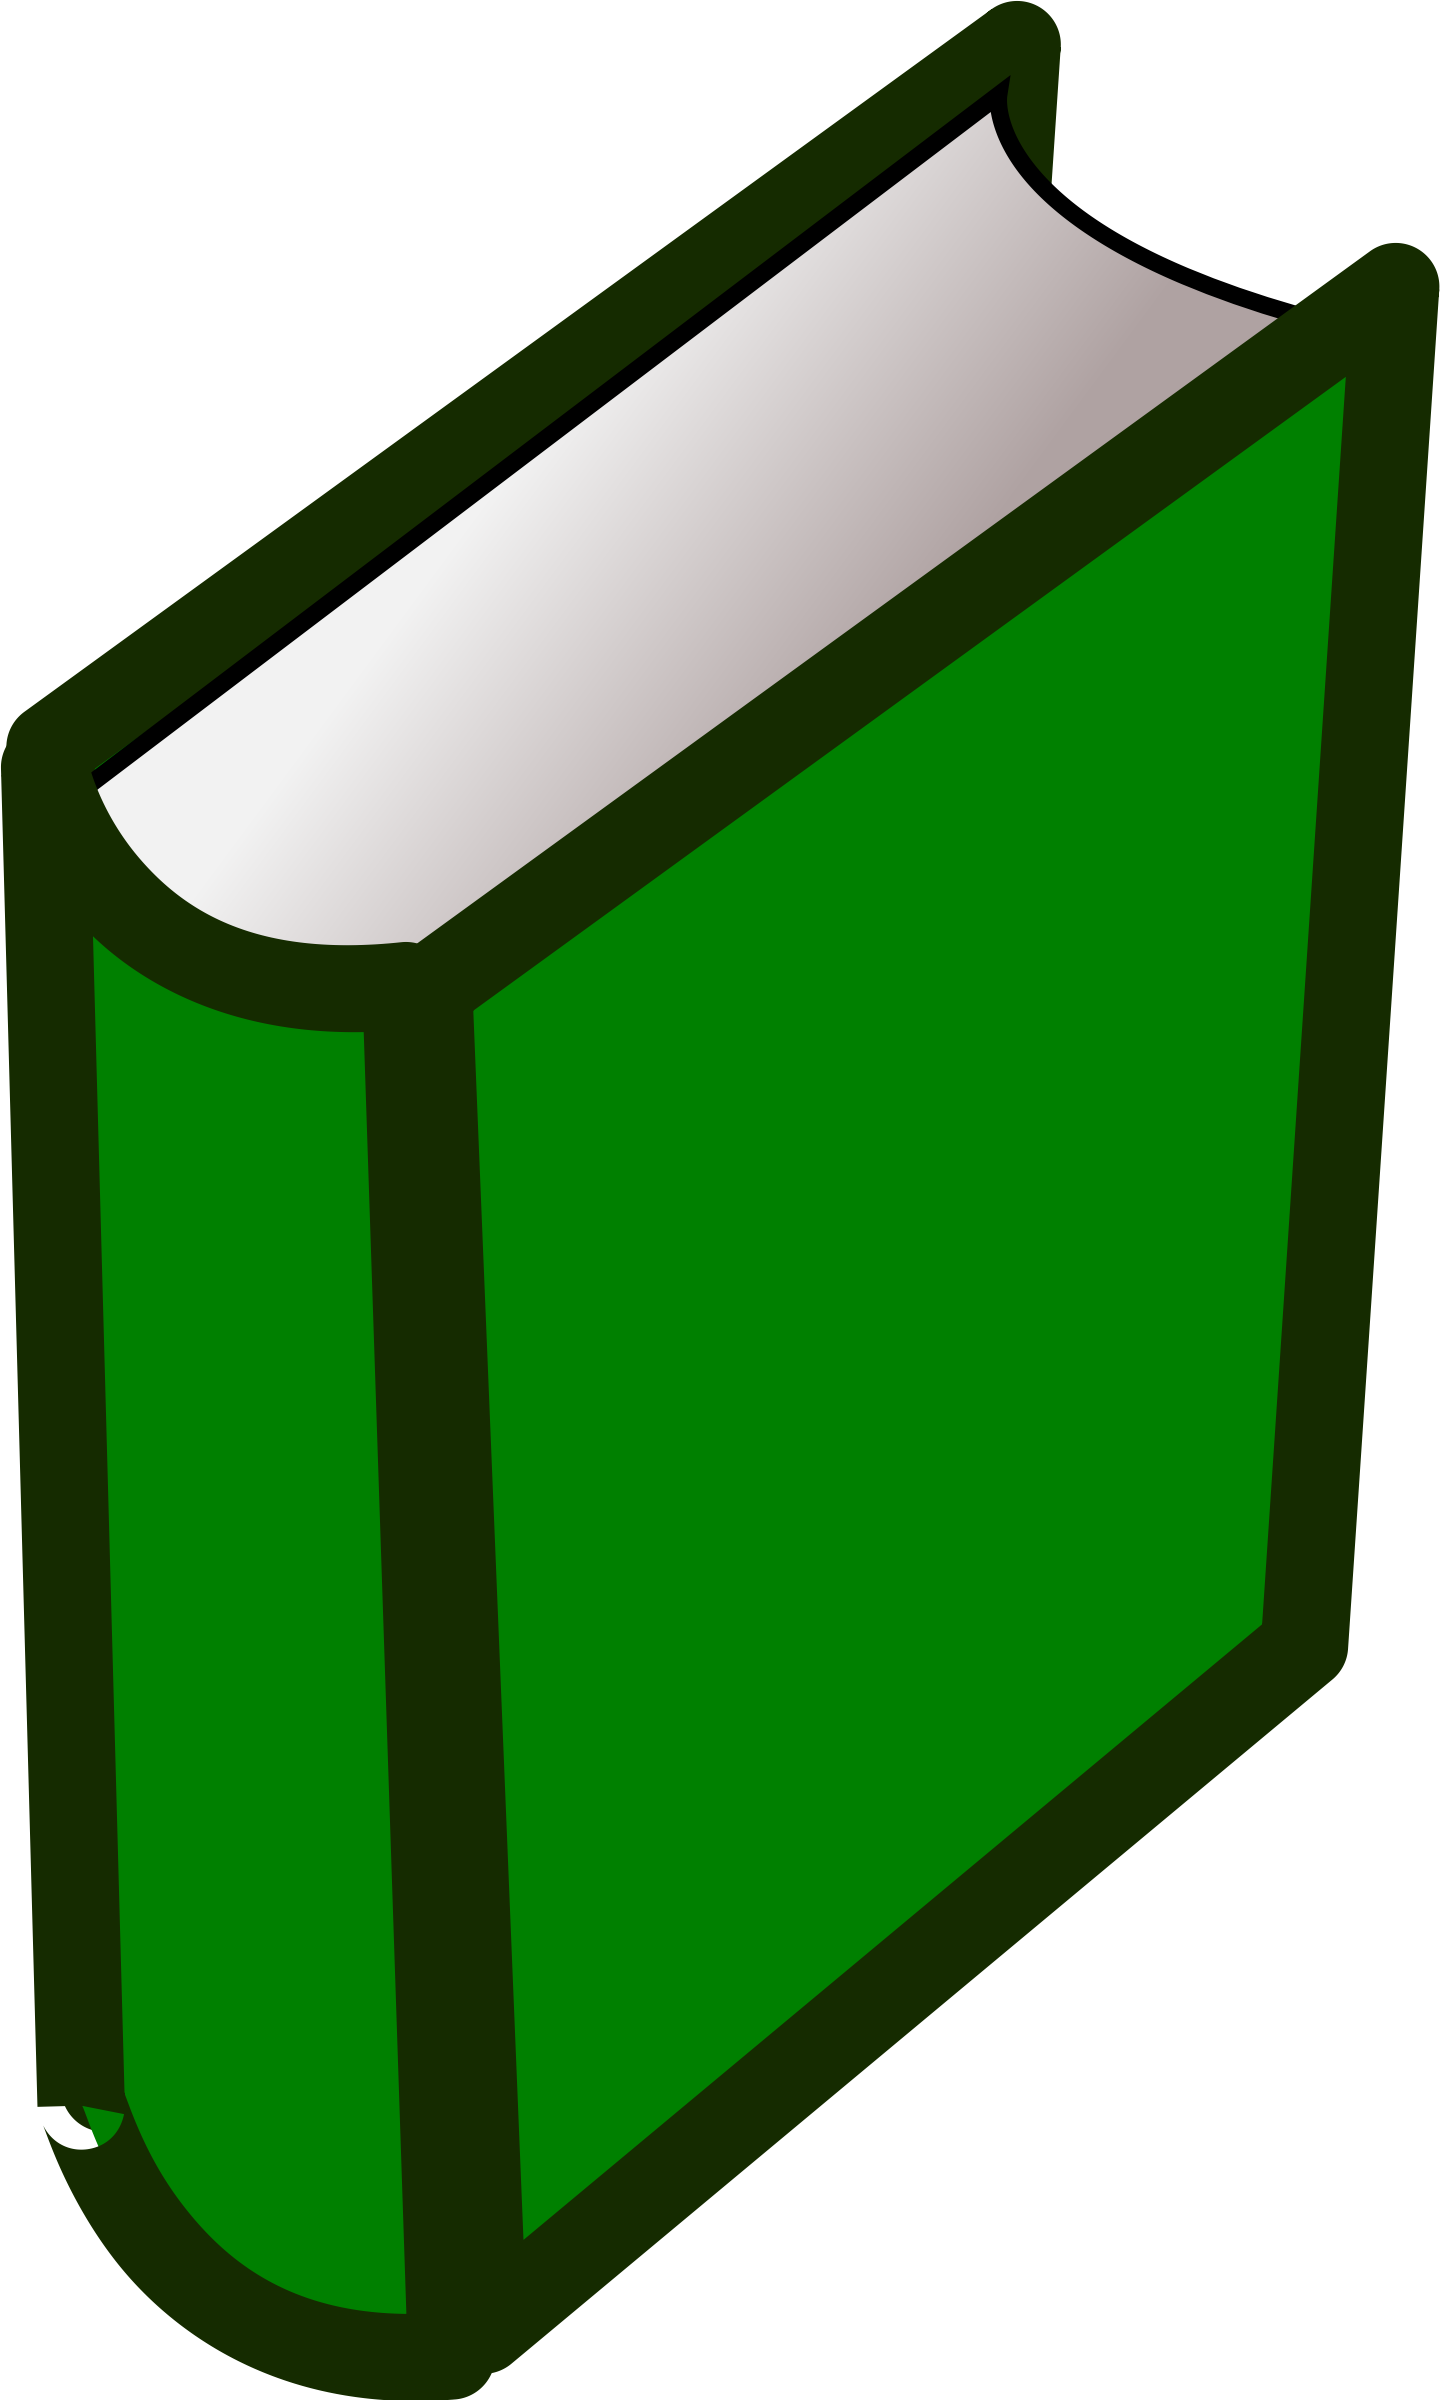 Big image png. Clipart writing book